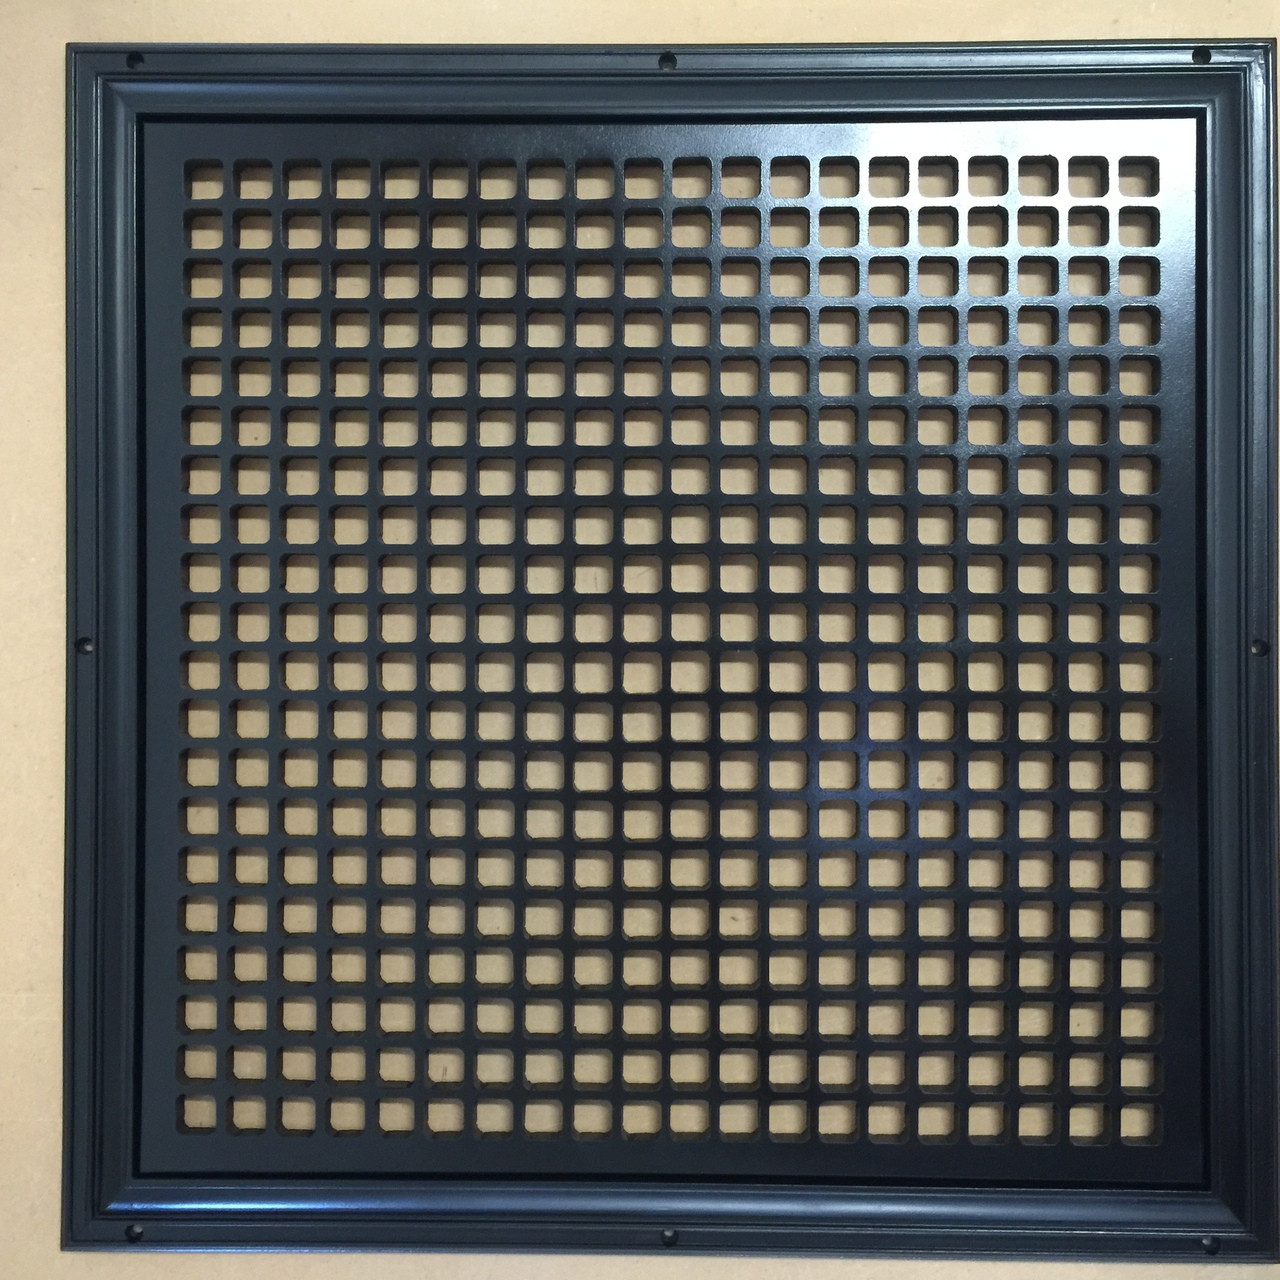 "Return Air Grille for and 12"" x 12"" opening. 12"" x 12"" overall size. Square  design. Black finish."